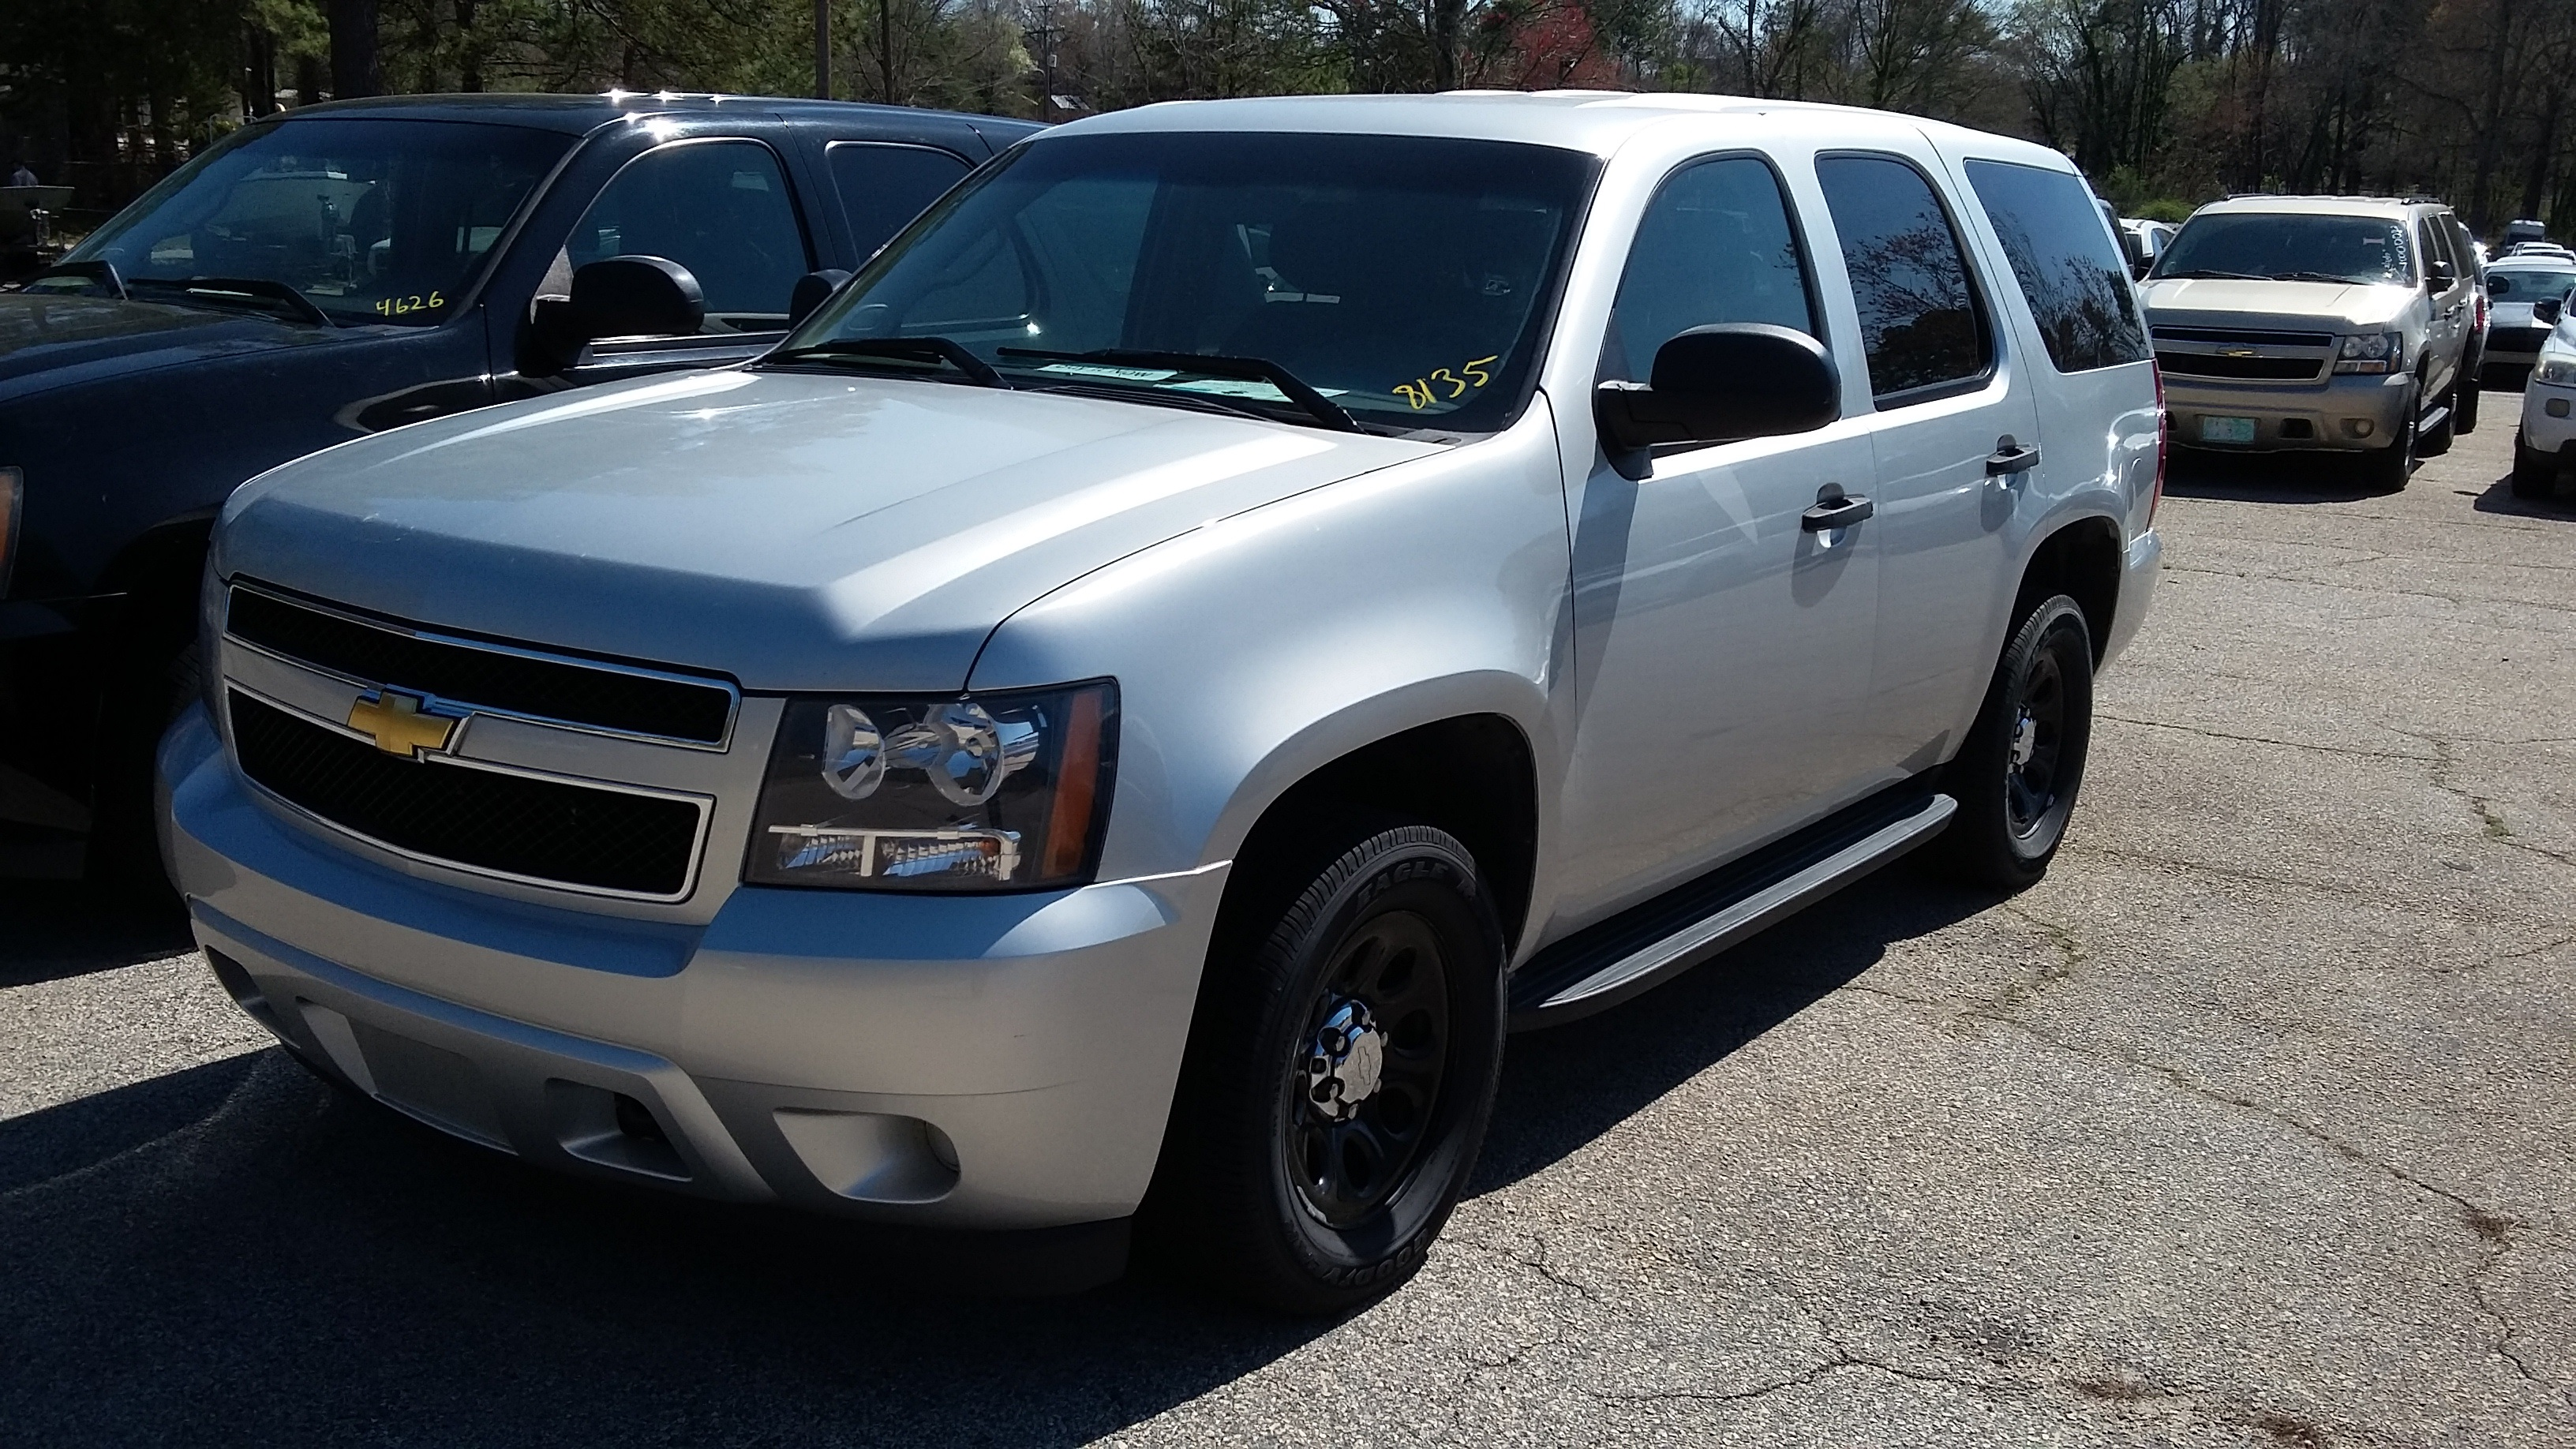 Car Auctions In Nc >> Nc Dps Surplus Vehicle Sales